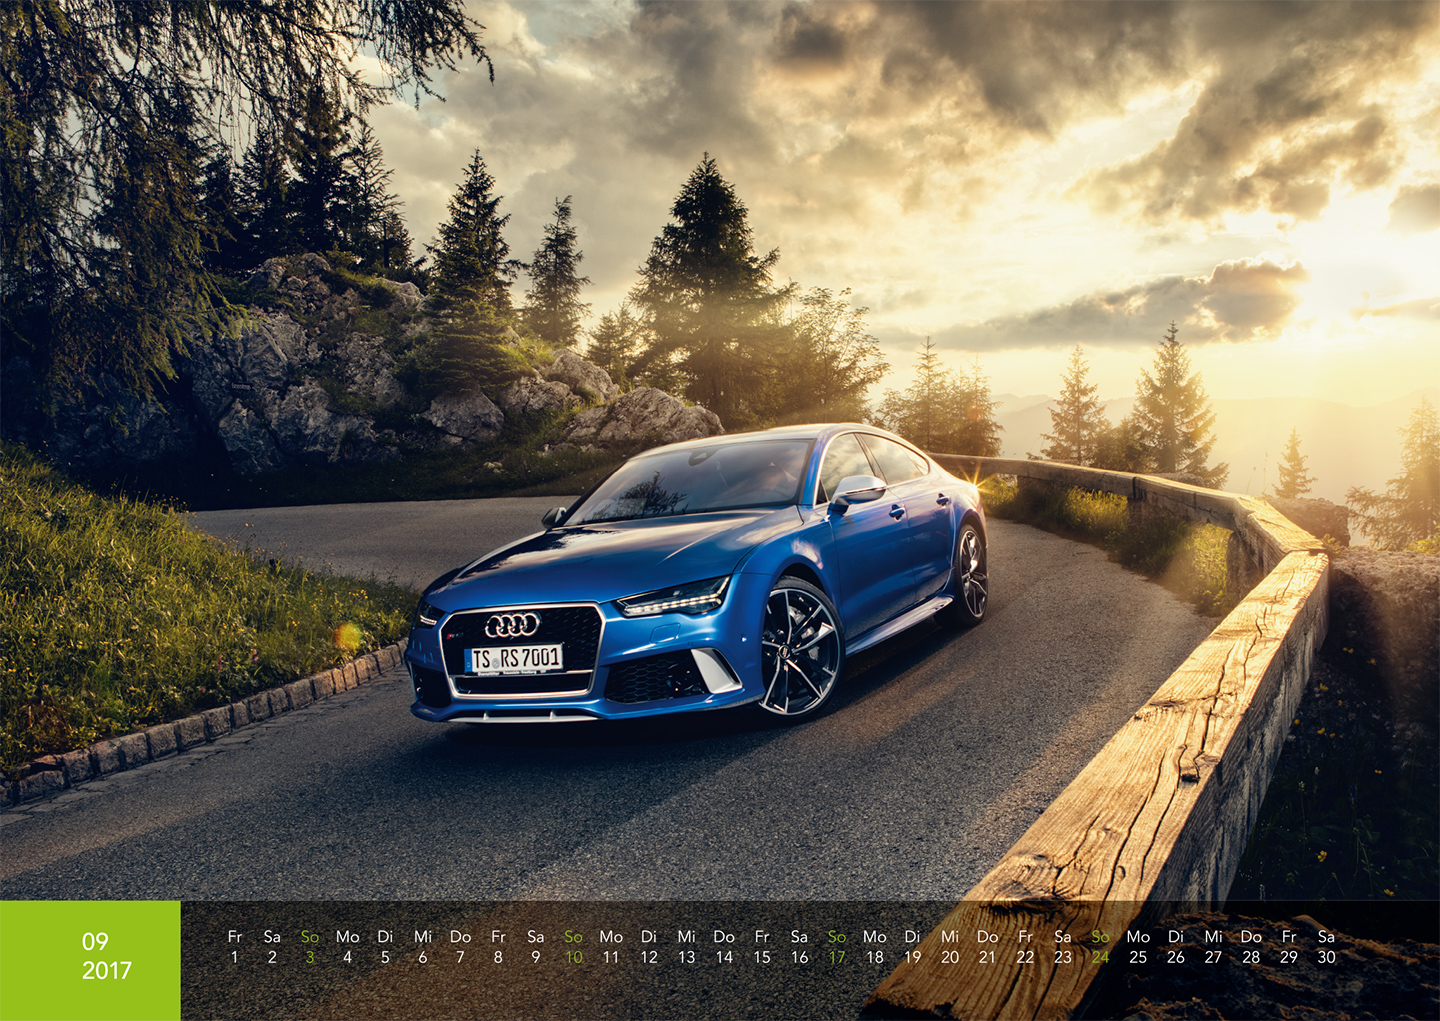 Audi Kalender 2017 - Audi RS7 Performance